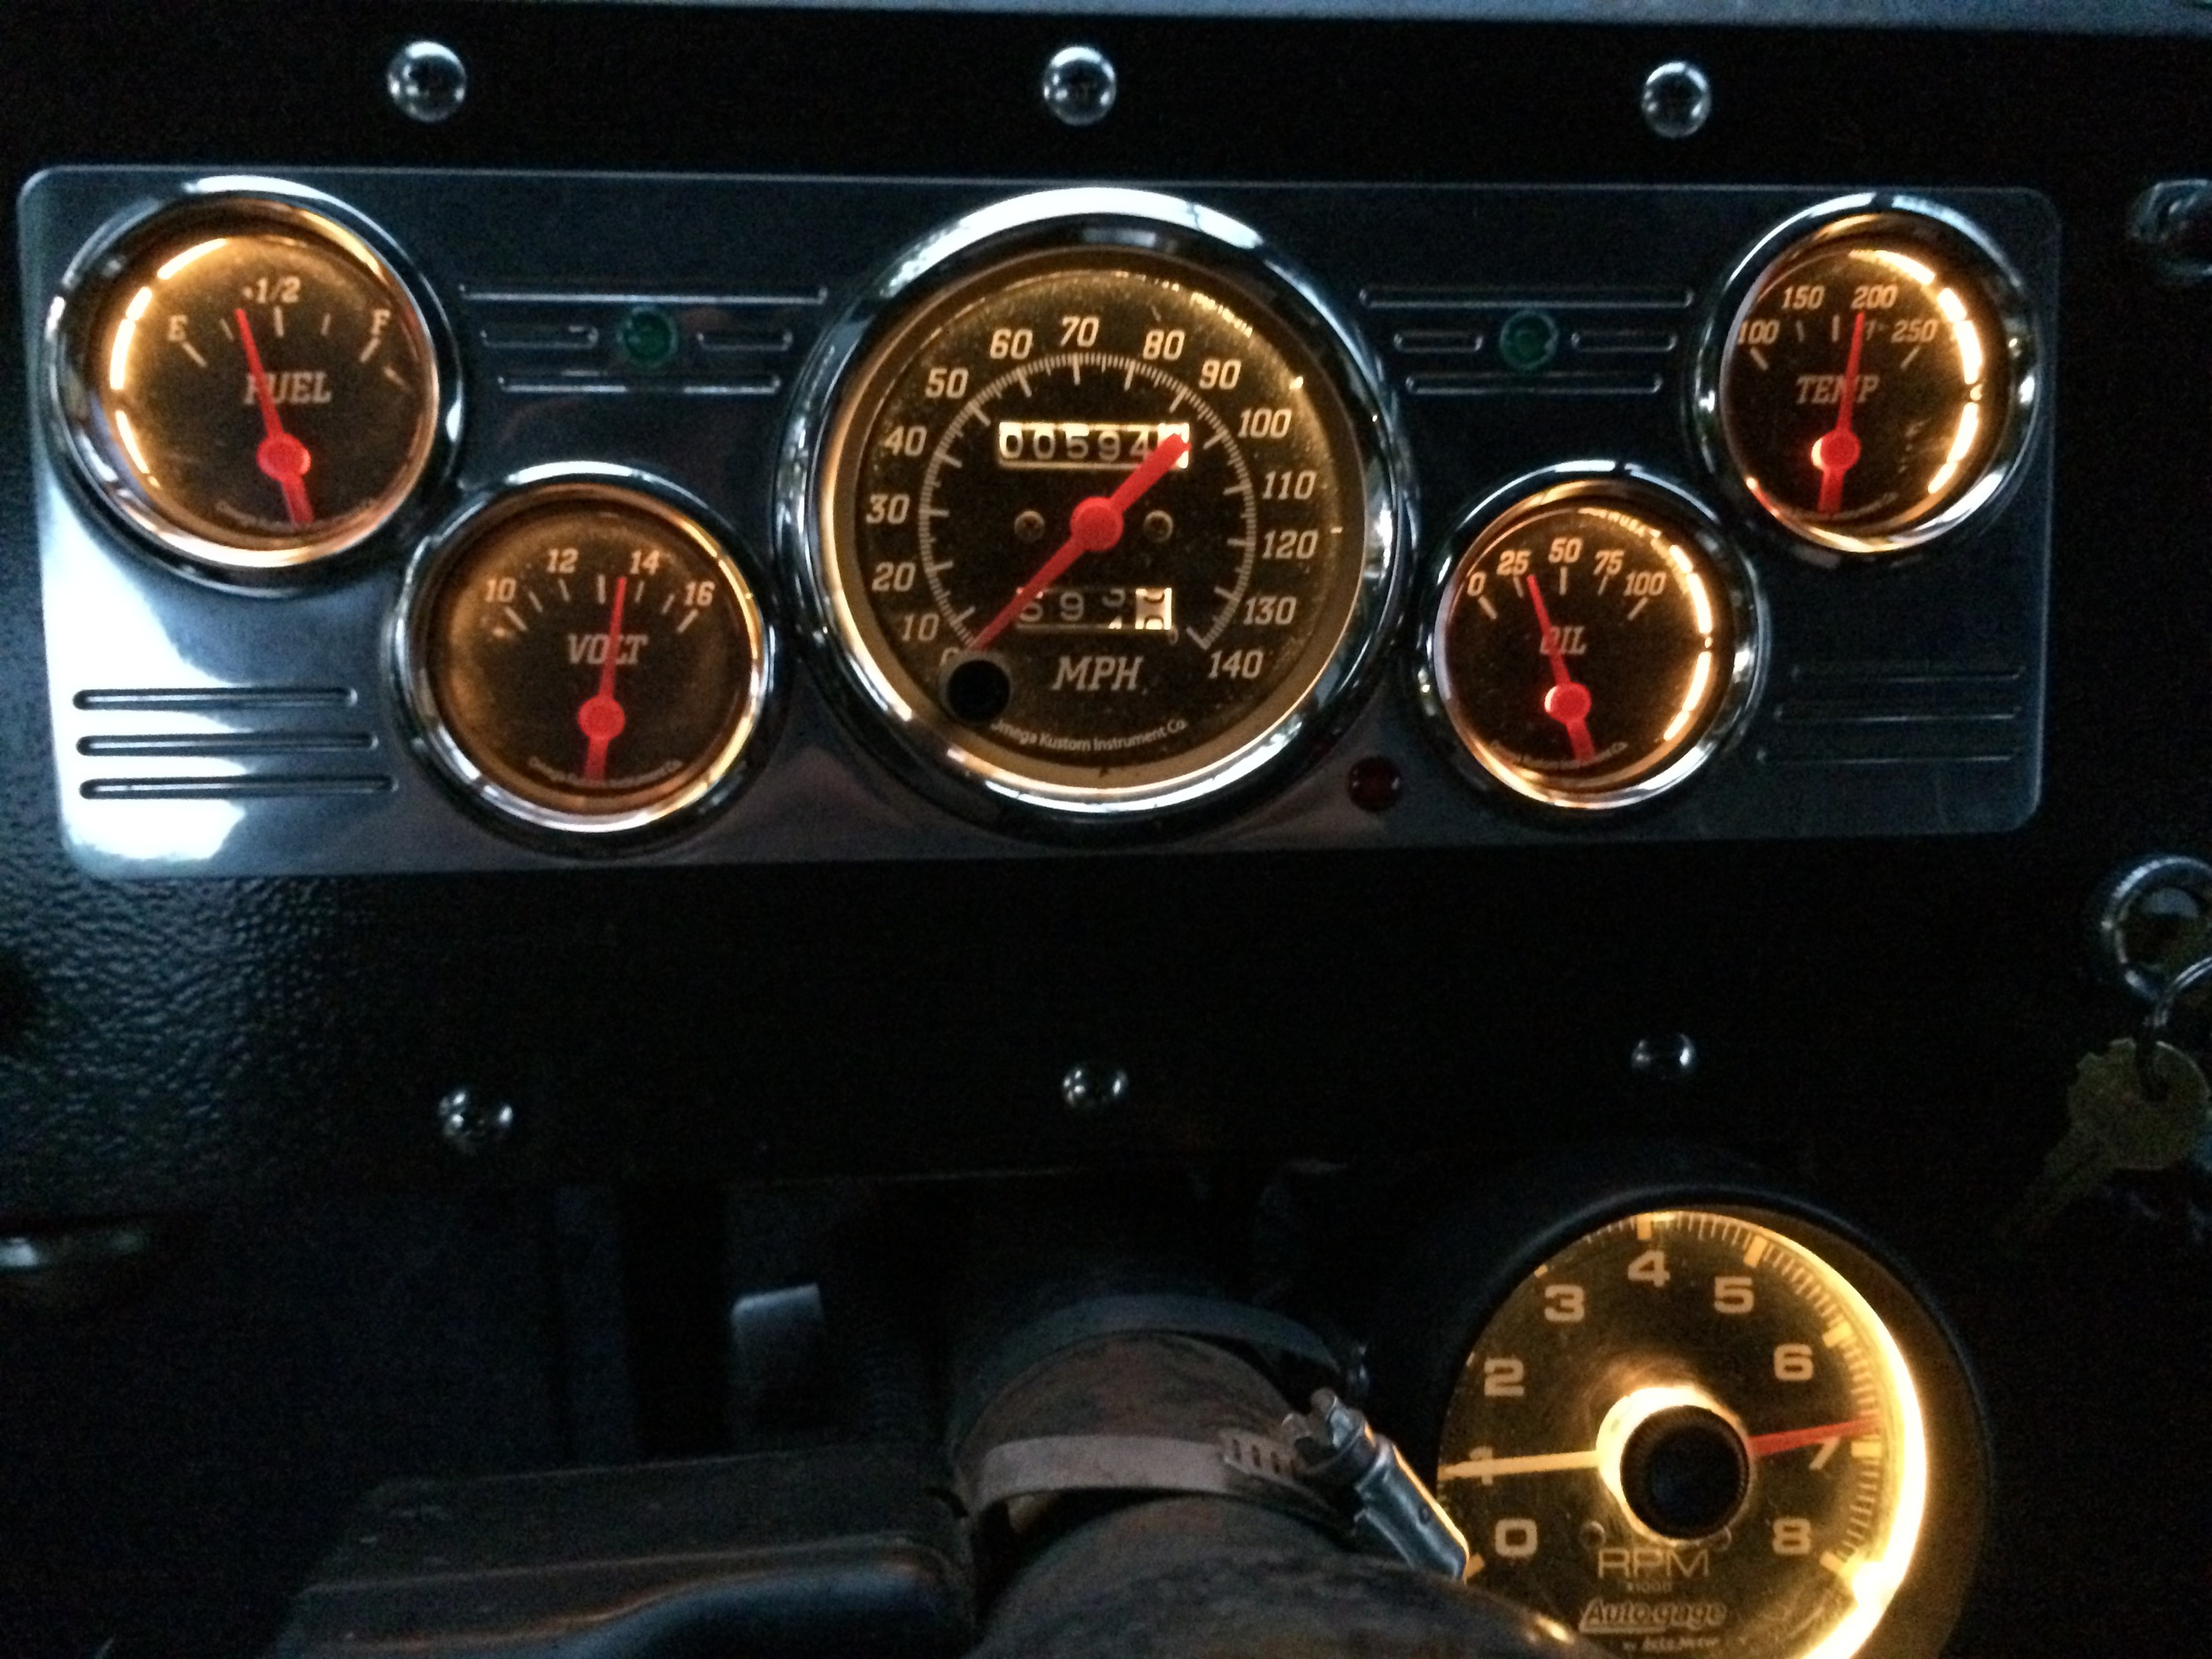 New dash mount and gauges.  Origional mileage unknown.